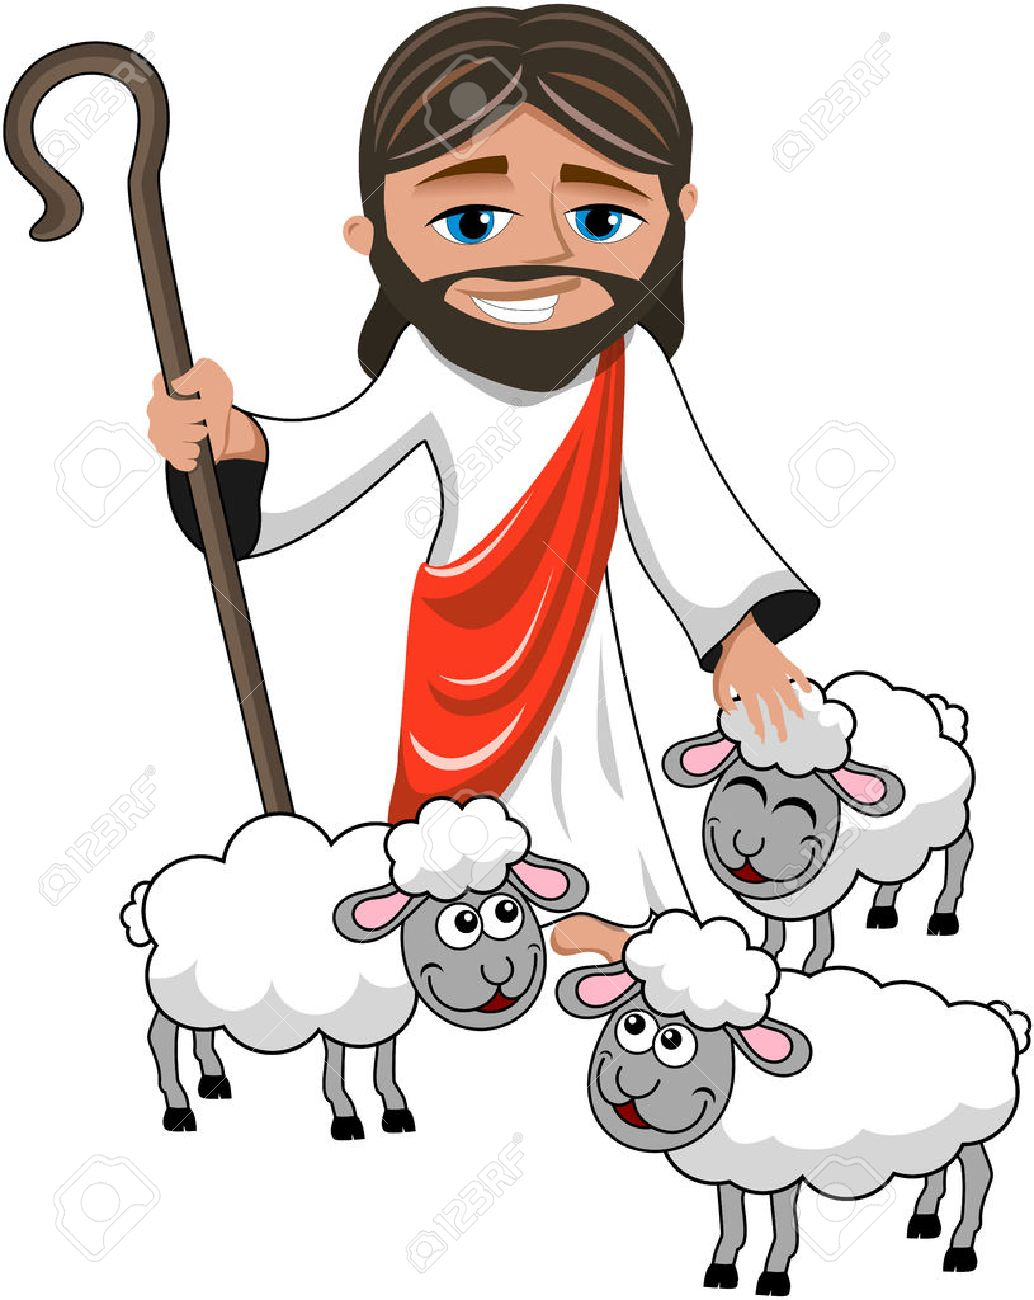 Jesus The Good Shepherd Clipart at GetDrawings.com.